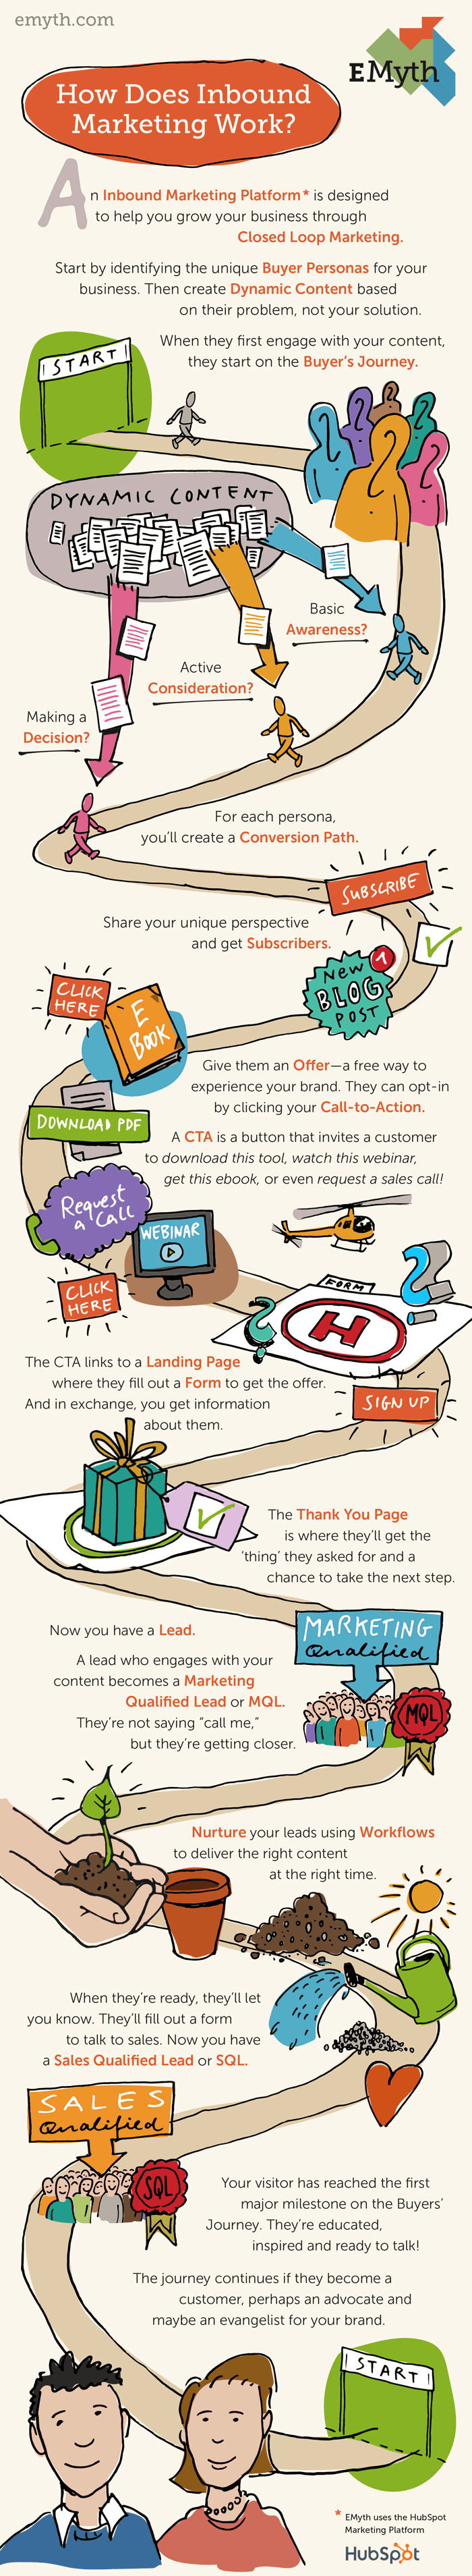 How Does Inbound Marketing Work?